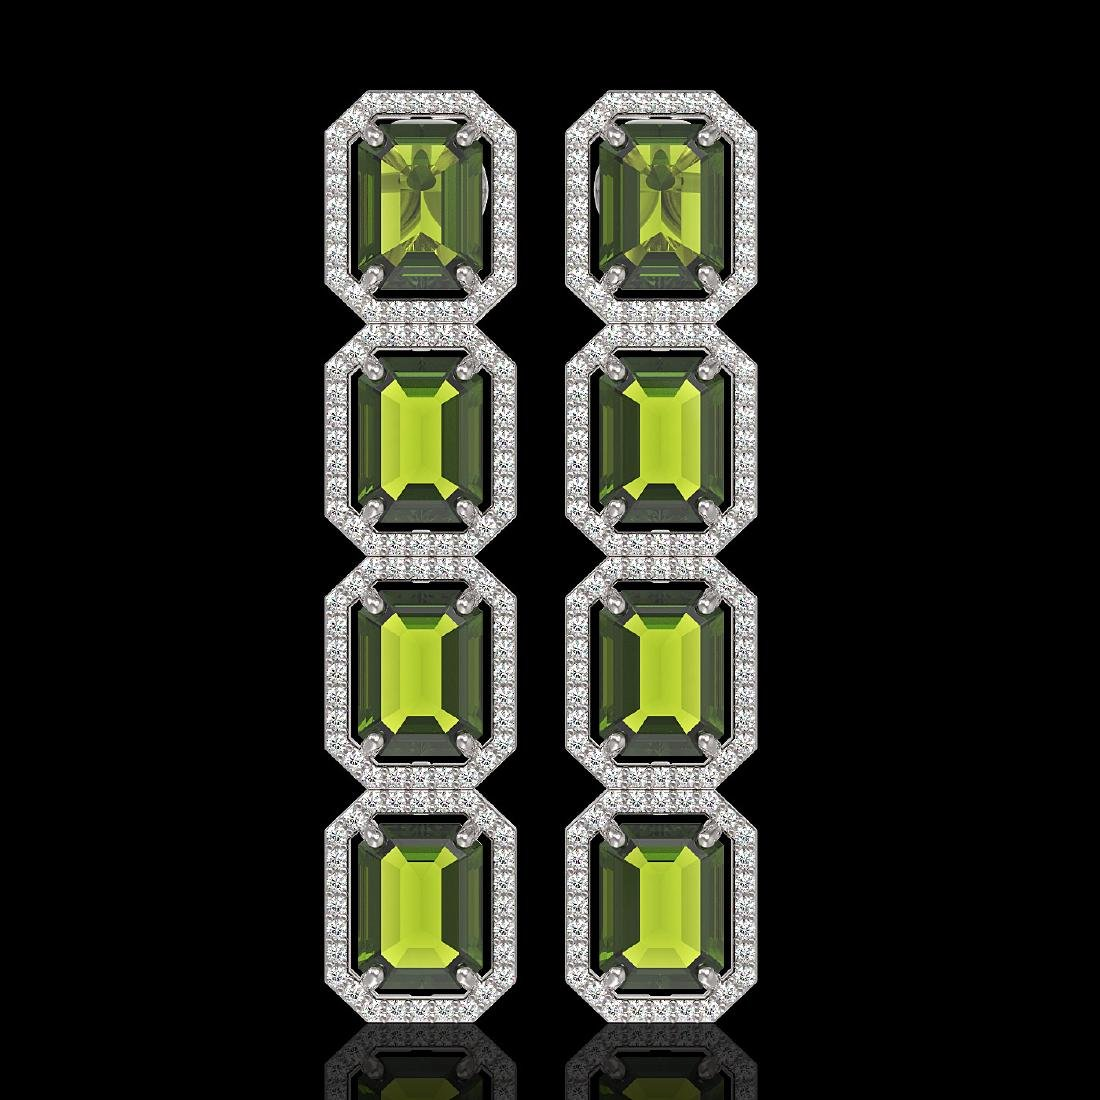 19.44 CTW Tourmaline & Diamond Halo Earrings 10K White